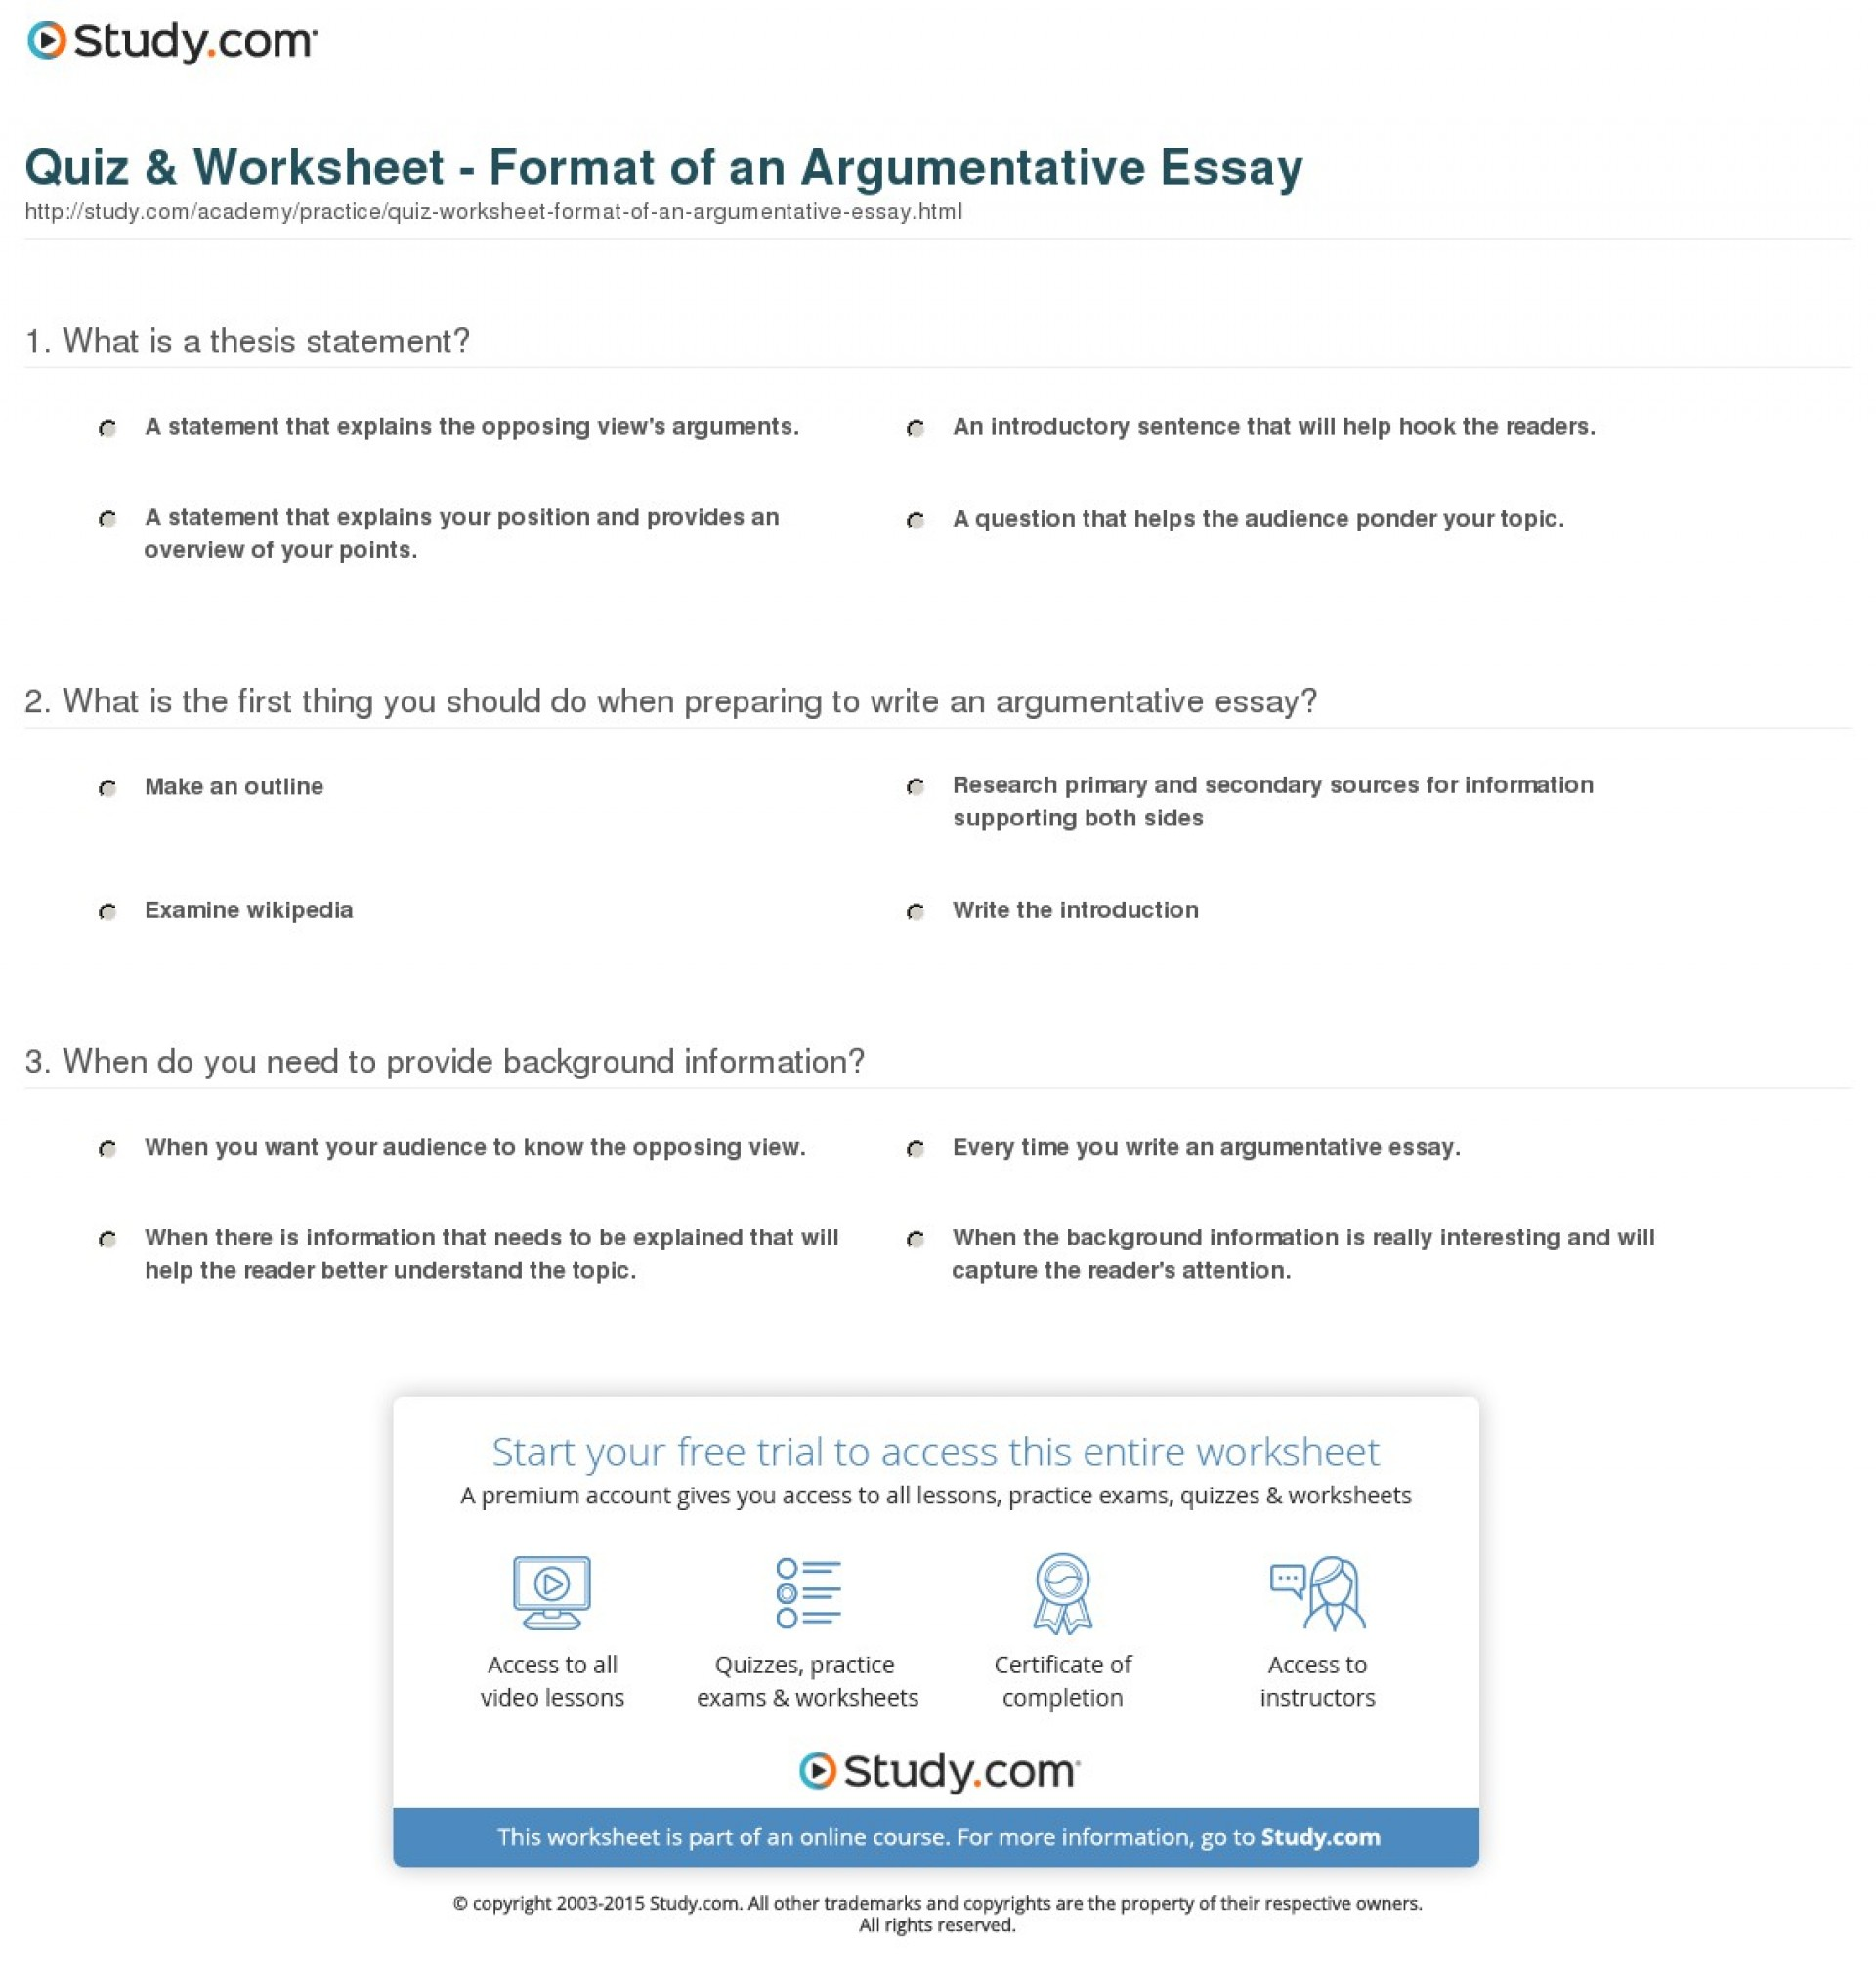 001 Essay Example Which List Best Describes The Organization Of An Argumentative Quiz Worksheet Fearsome Brainly 1920